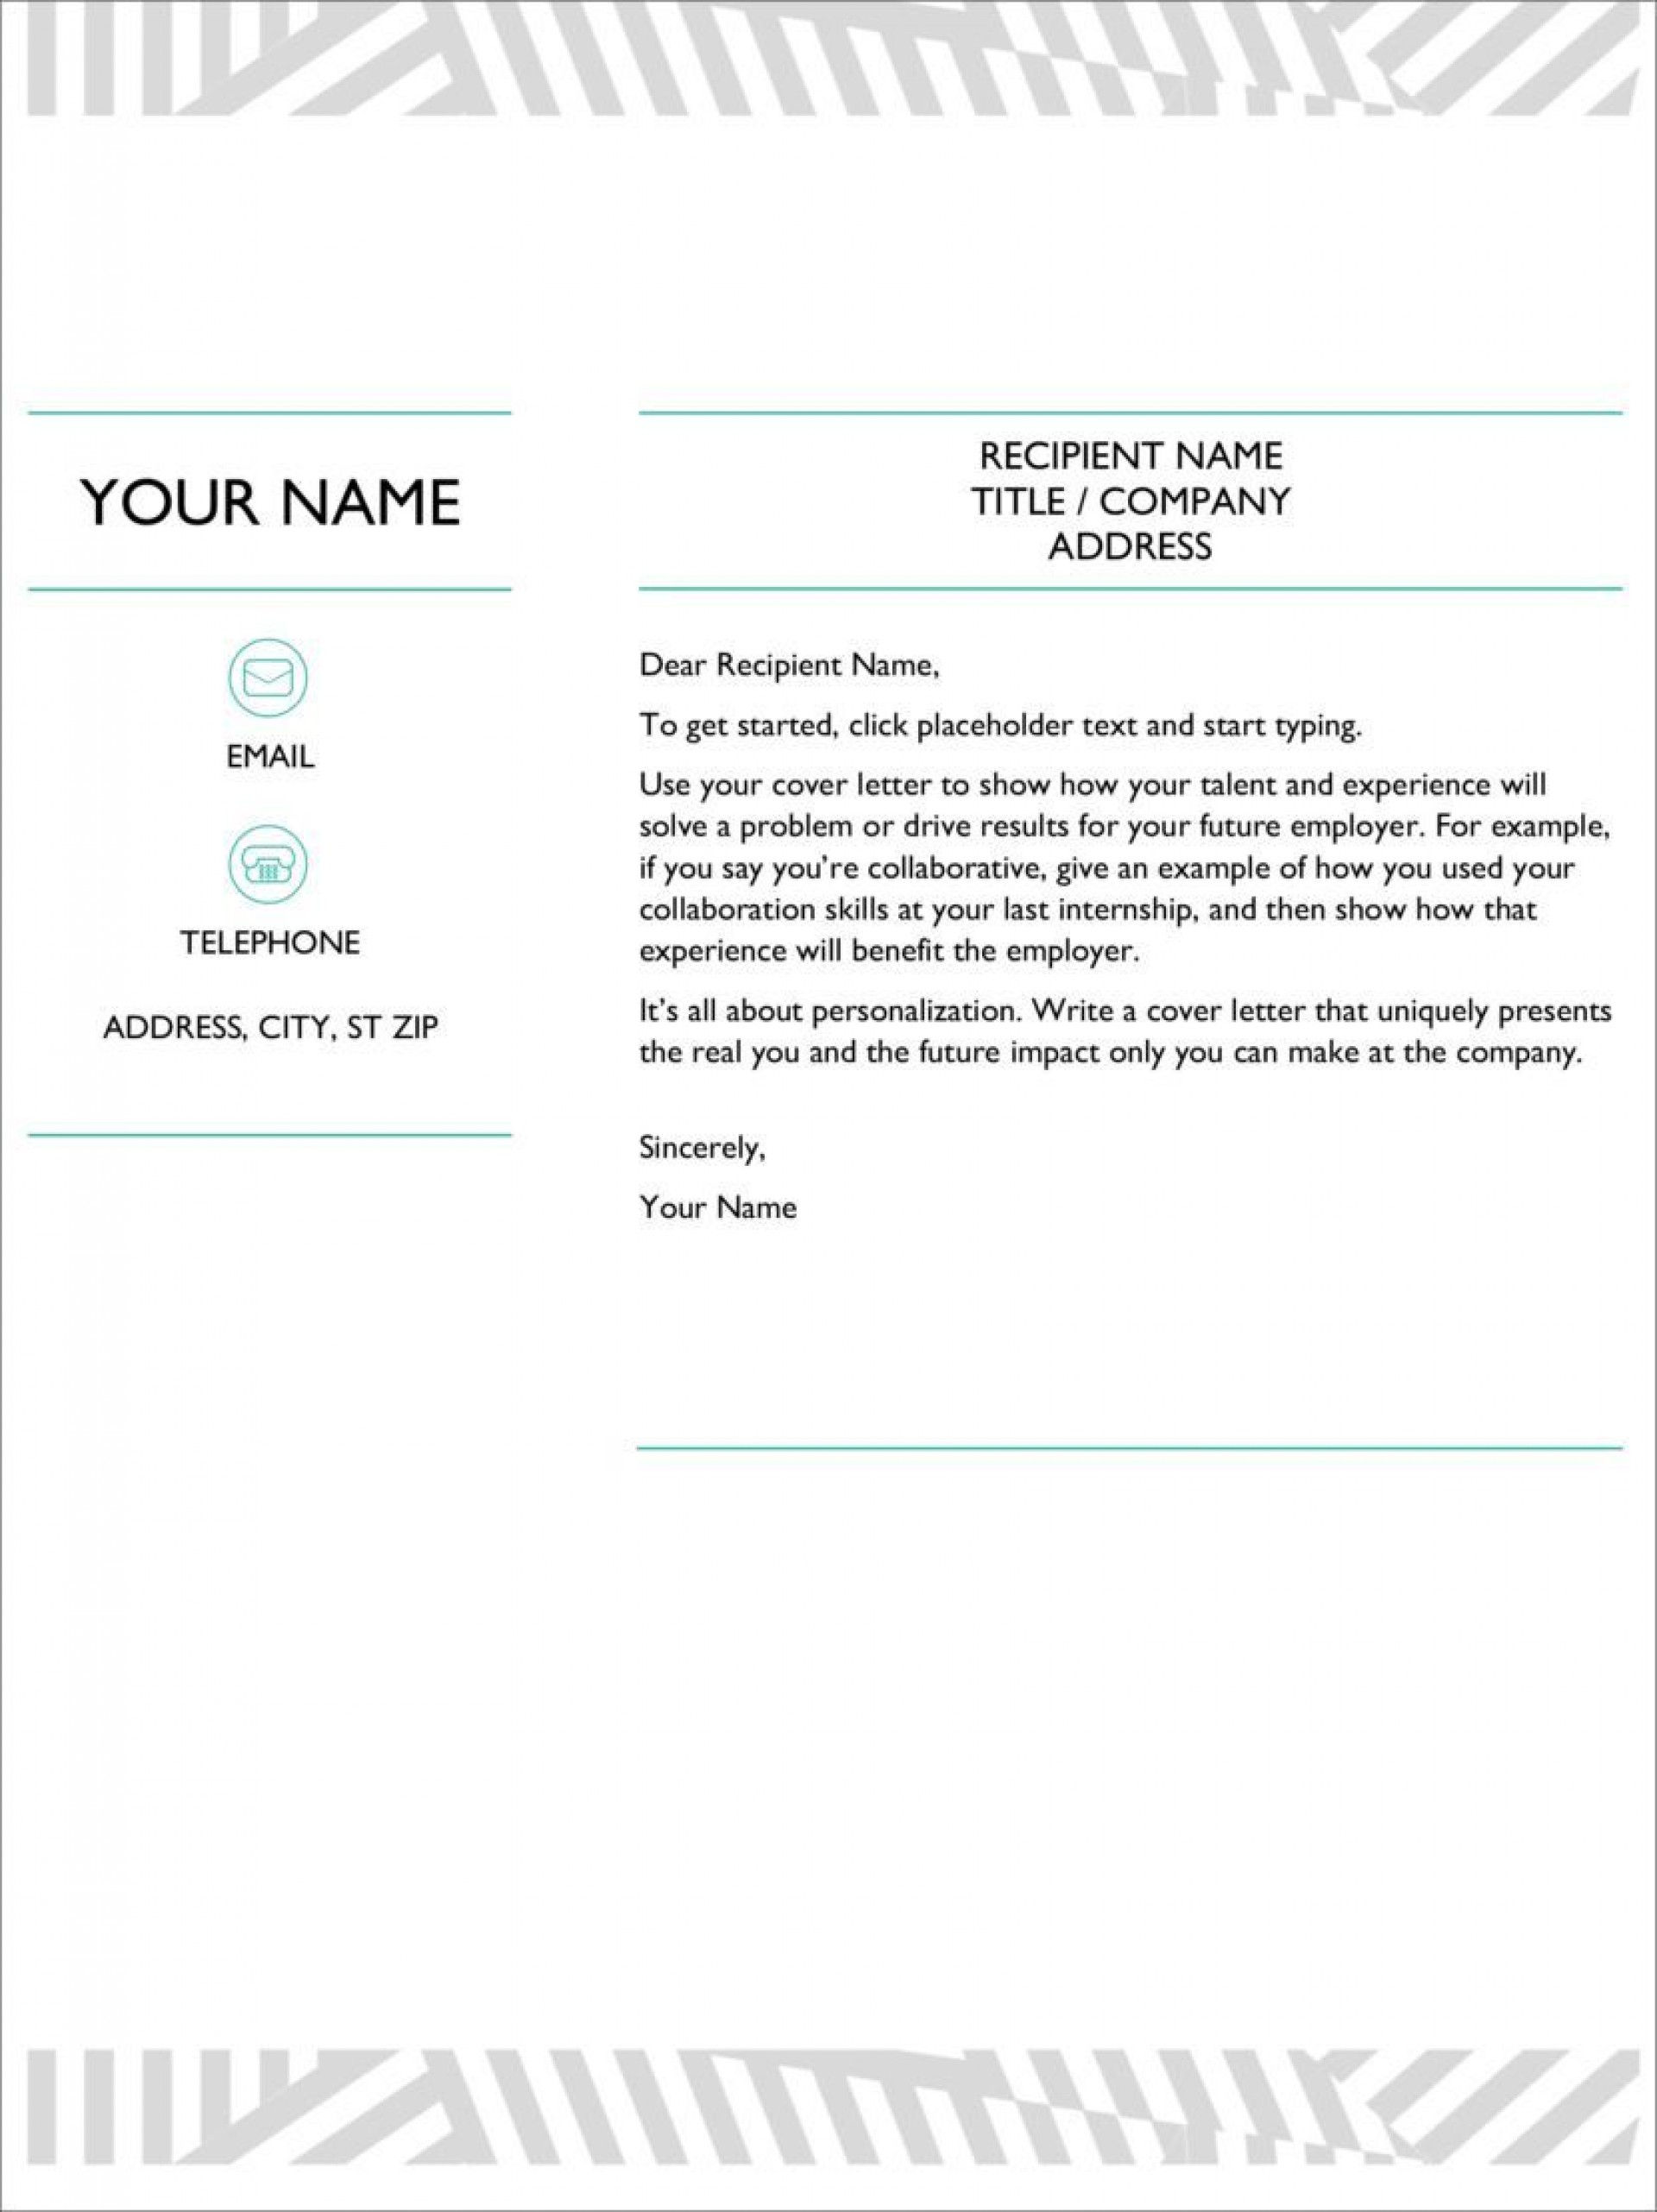 005 Outstanding Download Cover Letter Template In Microsoft Word Image  Free Creative Resume1920